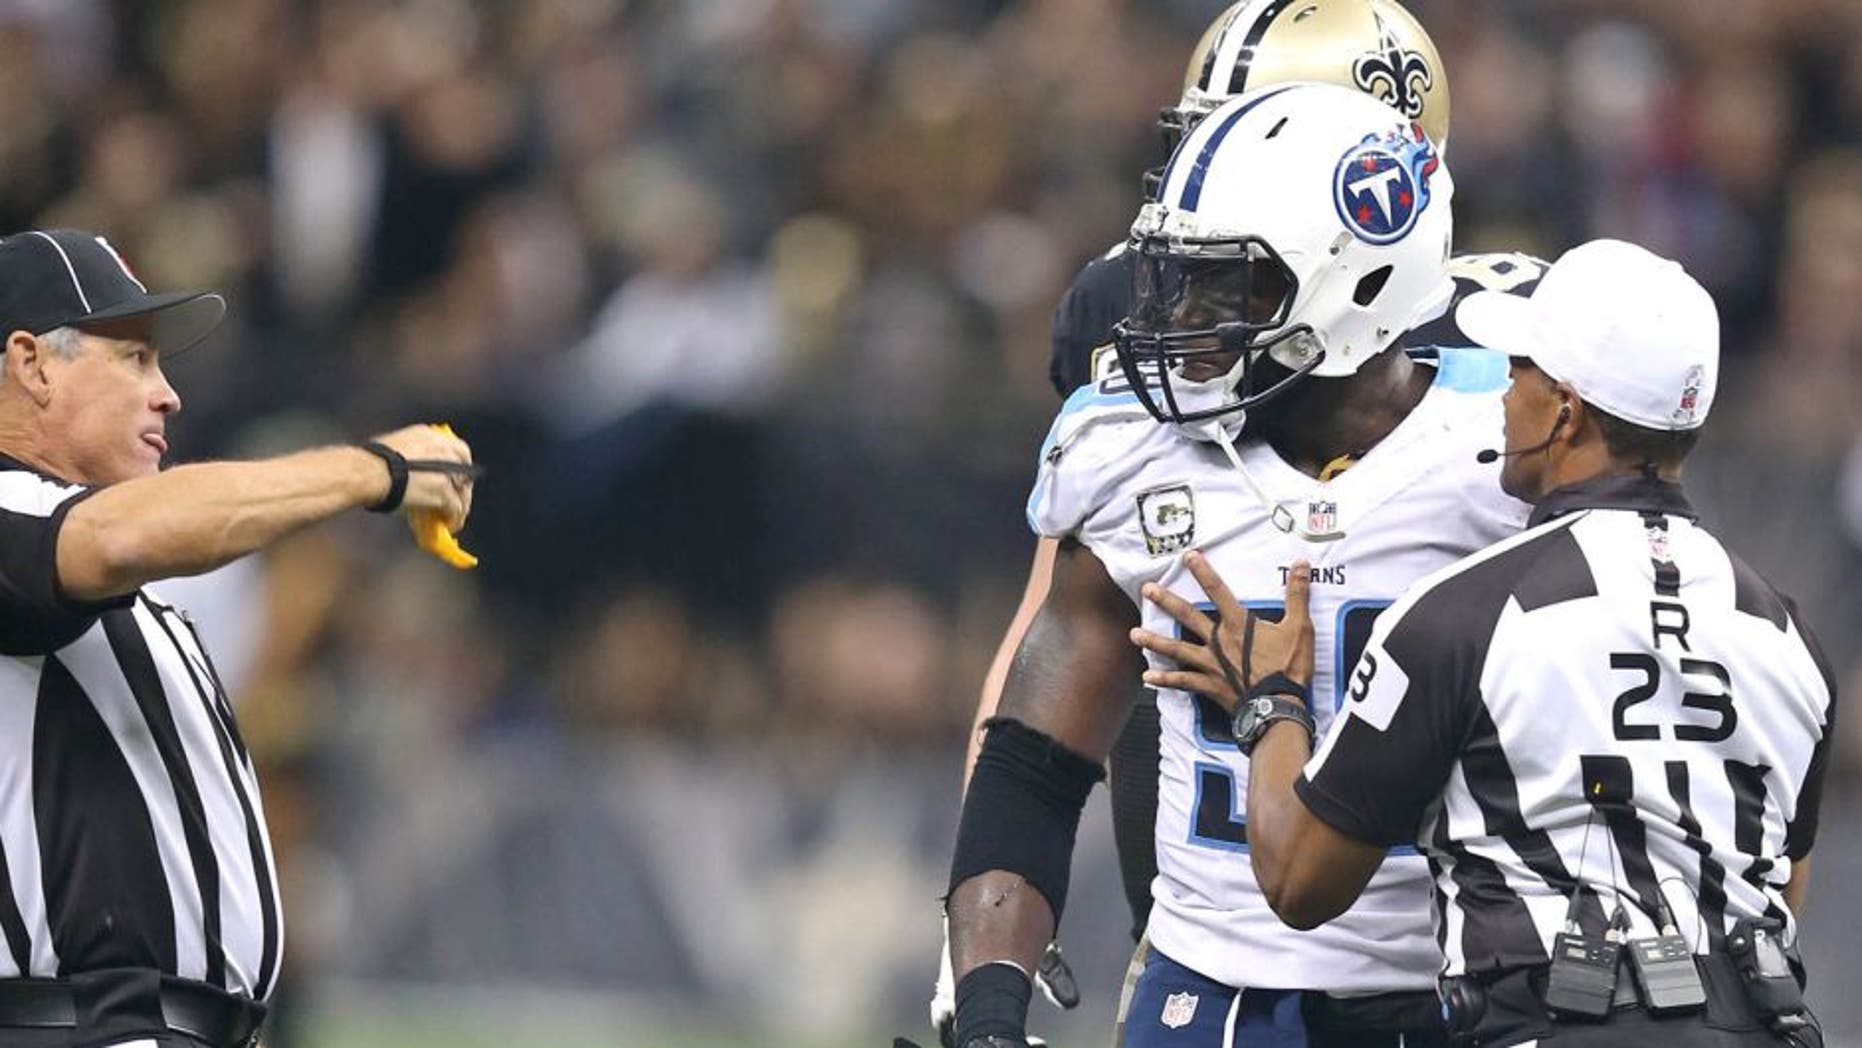 Nov 8, 2015; New Orleans, LA, USA; Tennessee Titans outside linebacker Brian Orakpo (98) is held back by referee Jerome Boger (23) while line judge Jeff Seeman throws a flag in the second half of their game against the New Orleans Saints at the Mercedes-Benz Superdome. The Titans won, 34-28, in overtime. Mandatory Credit: Chuck Cook-USA TODAY Sports